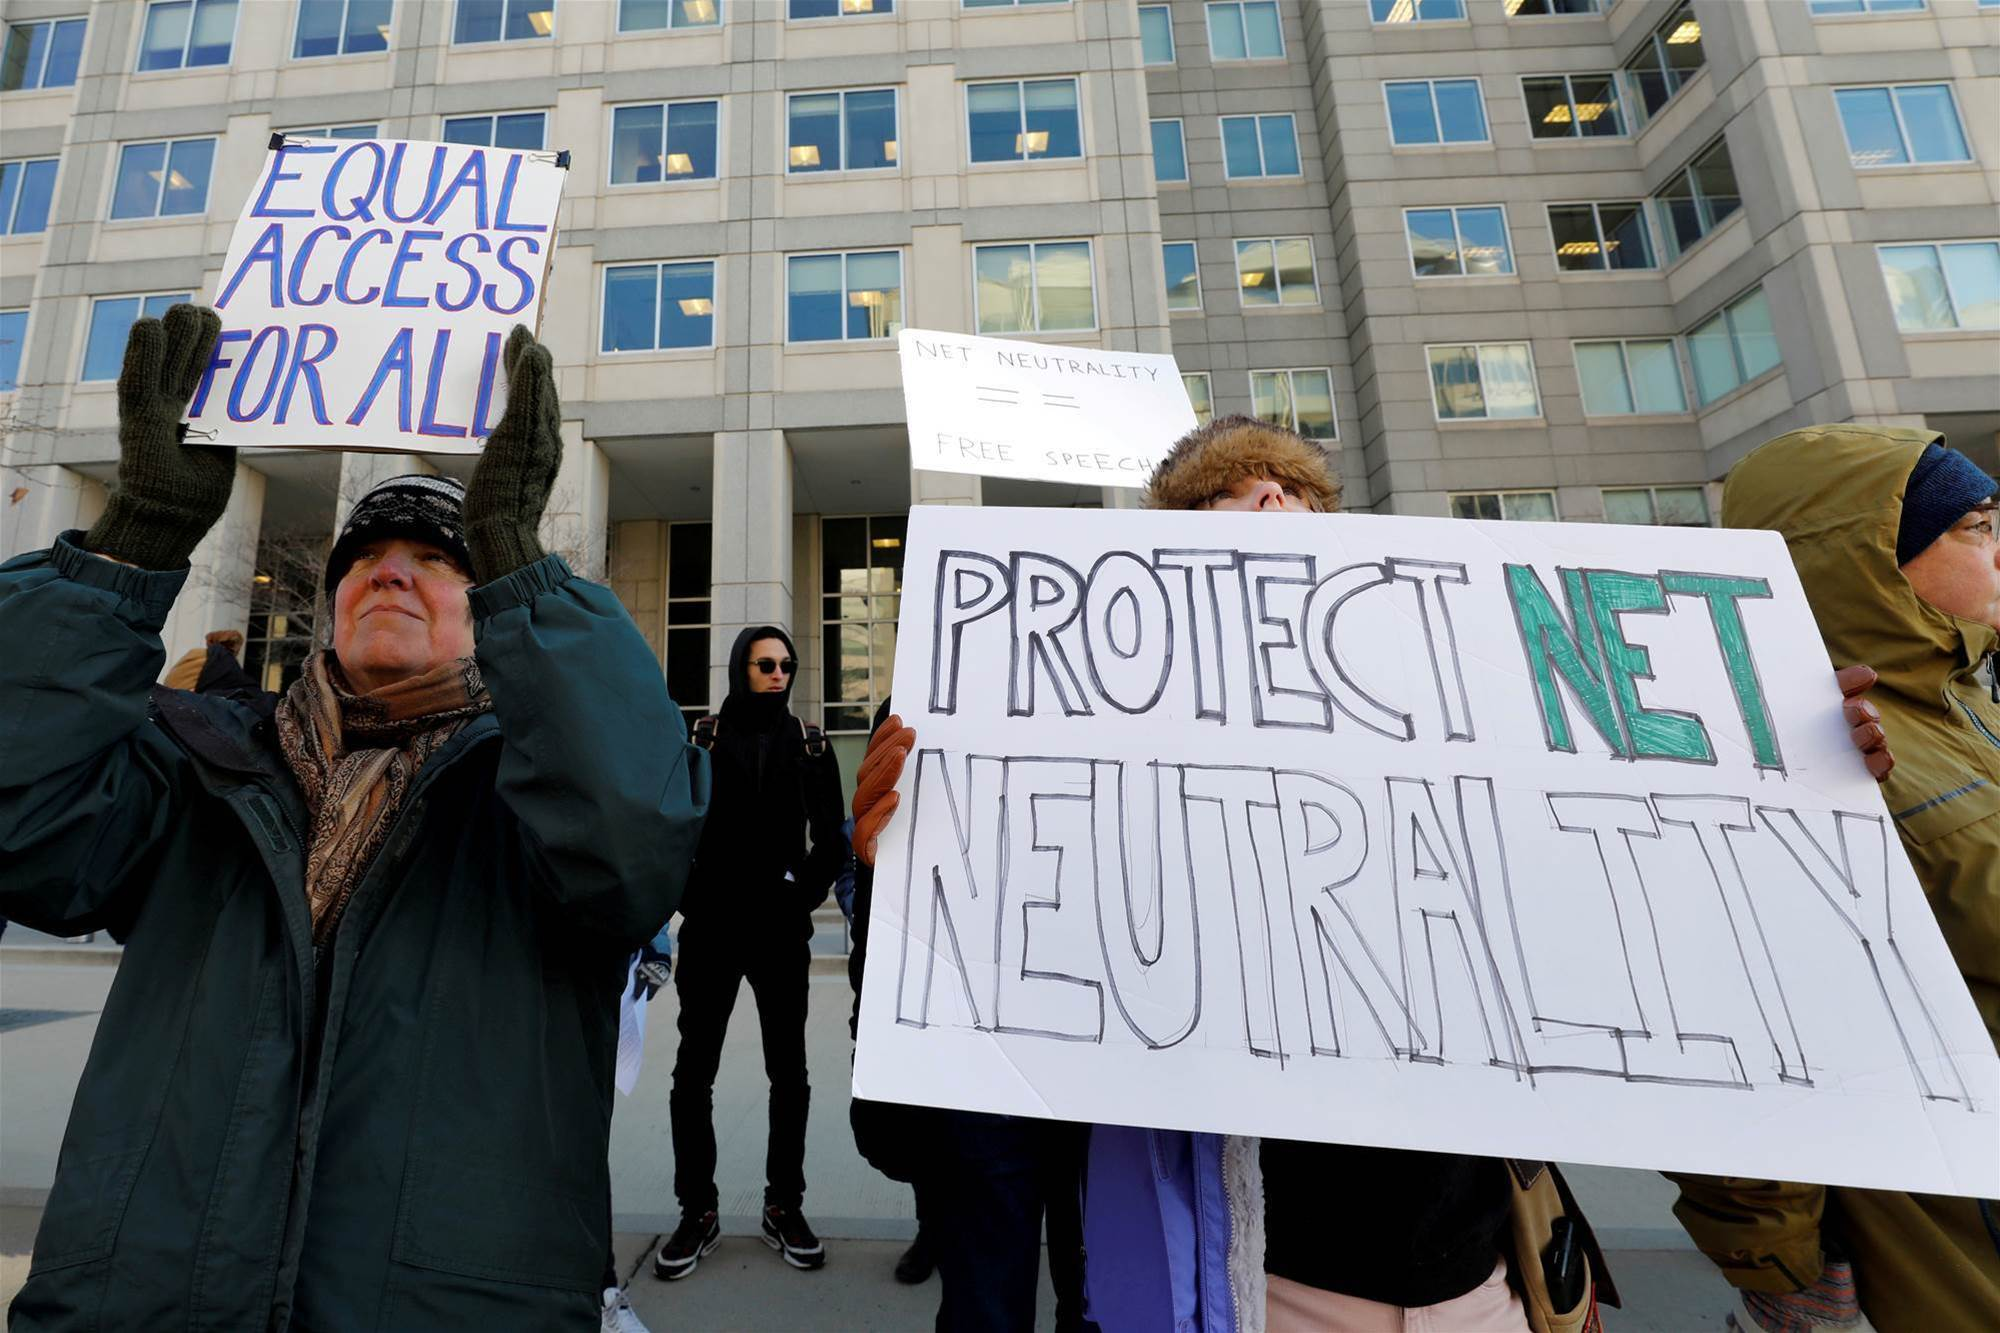 US House to vote to reinstate net neutrality rules in April